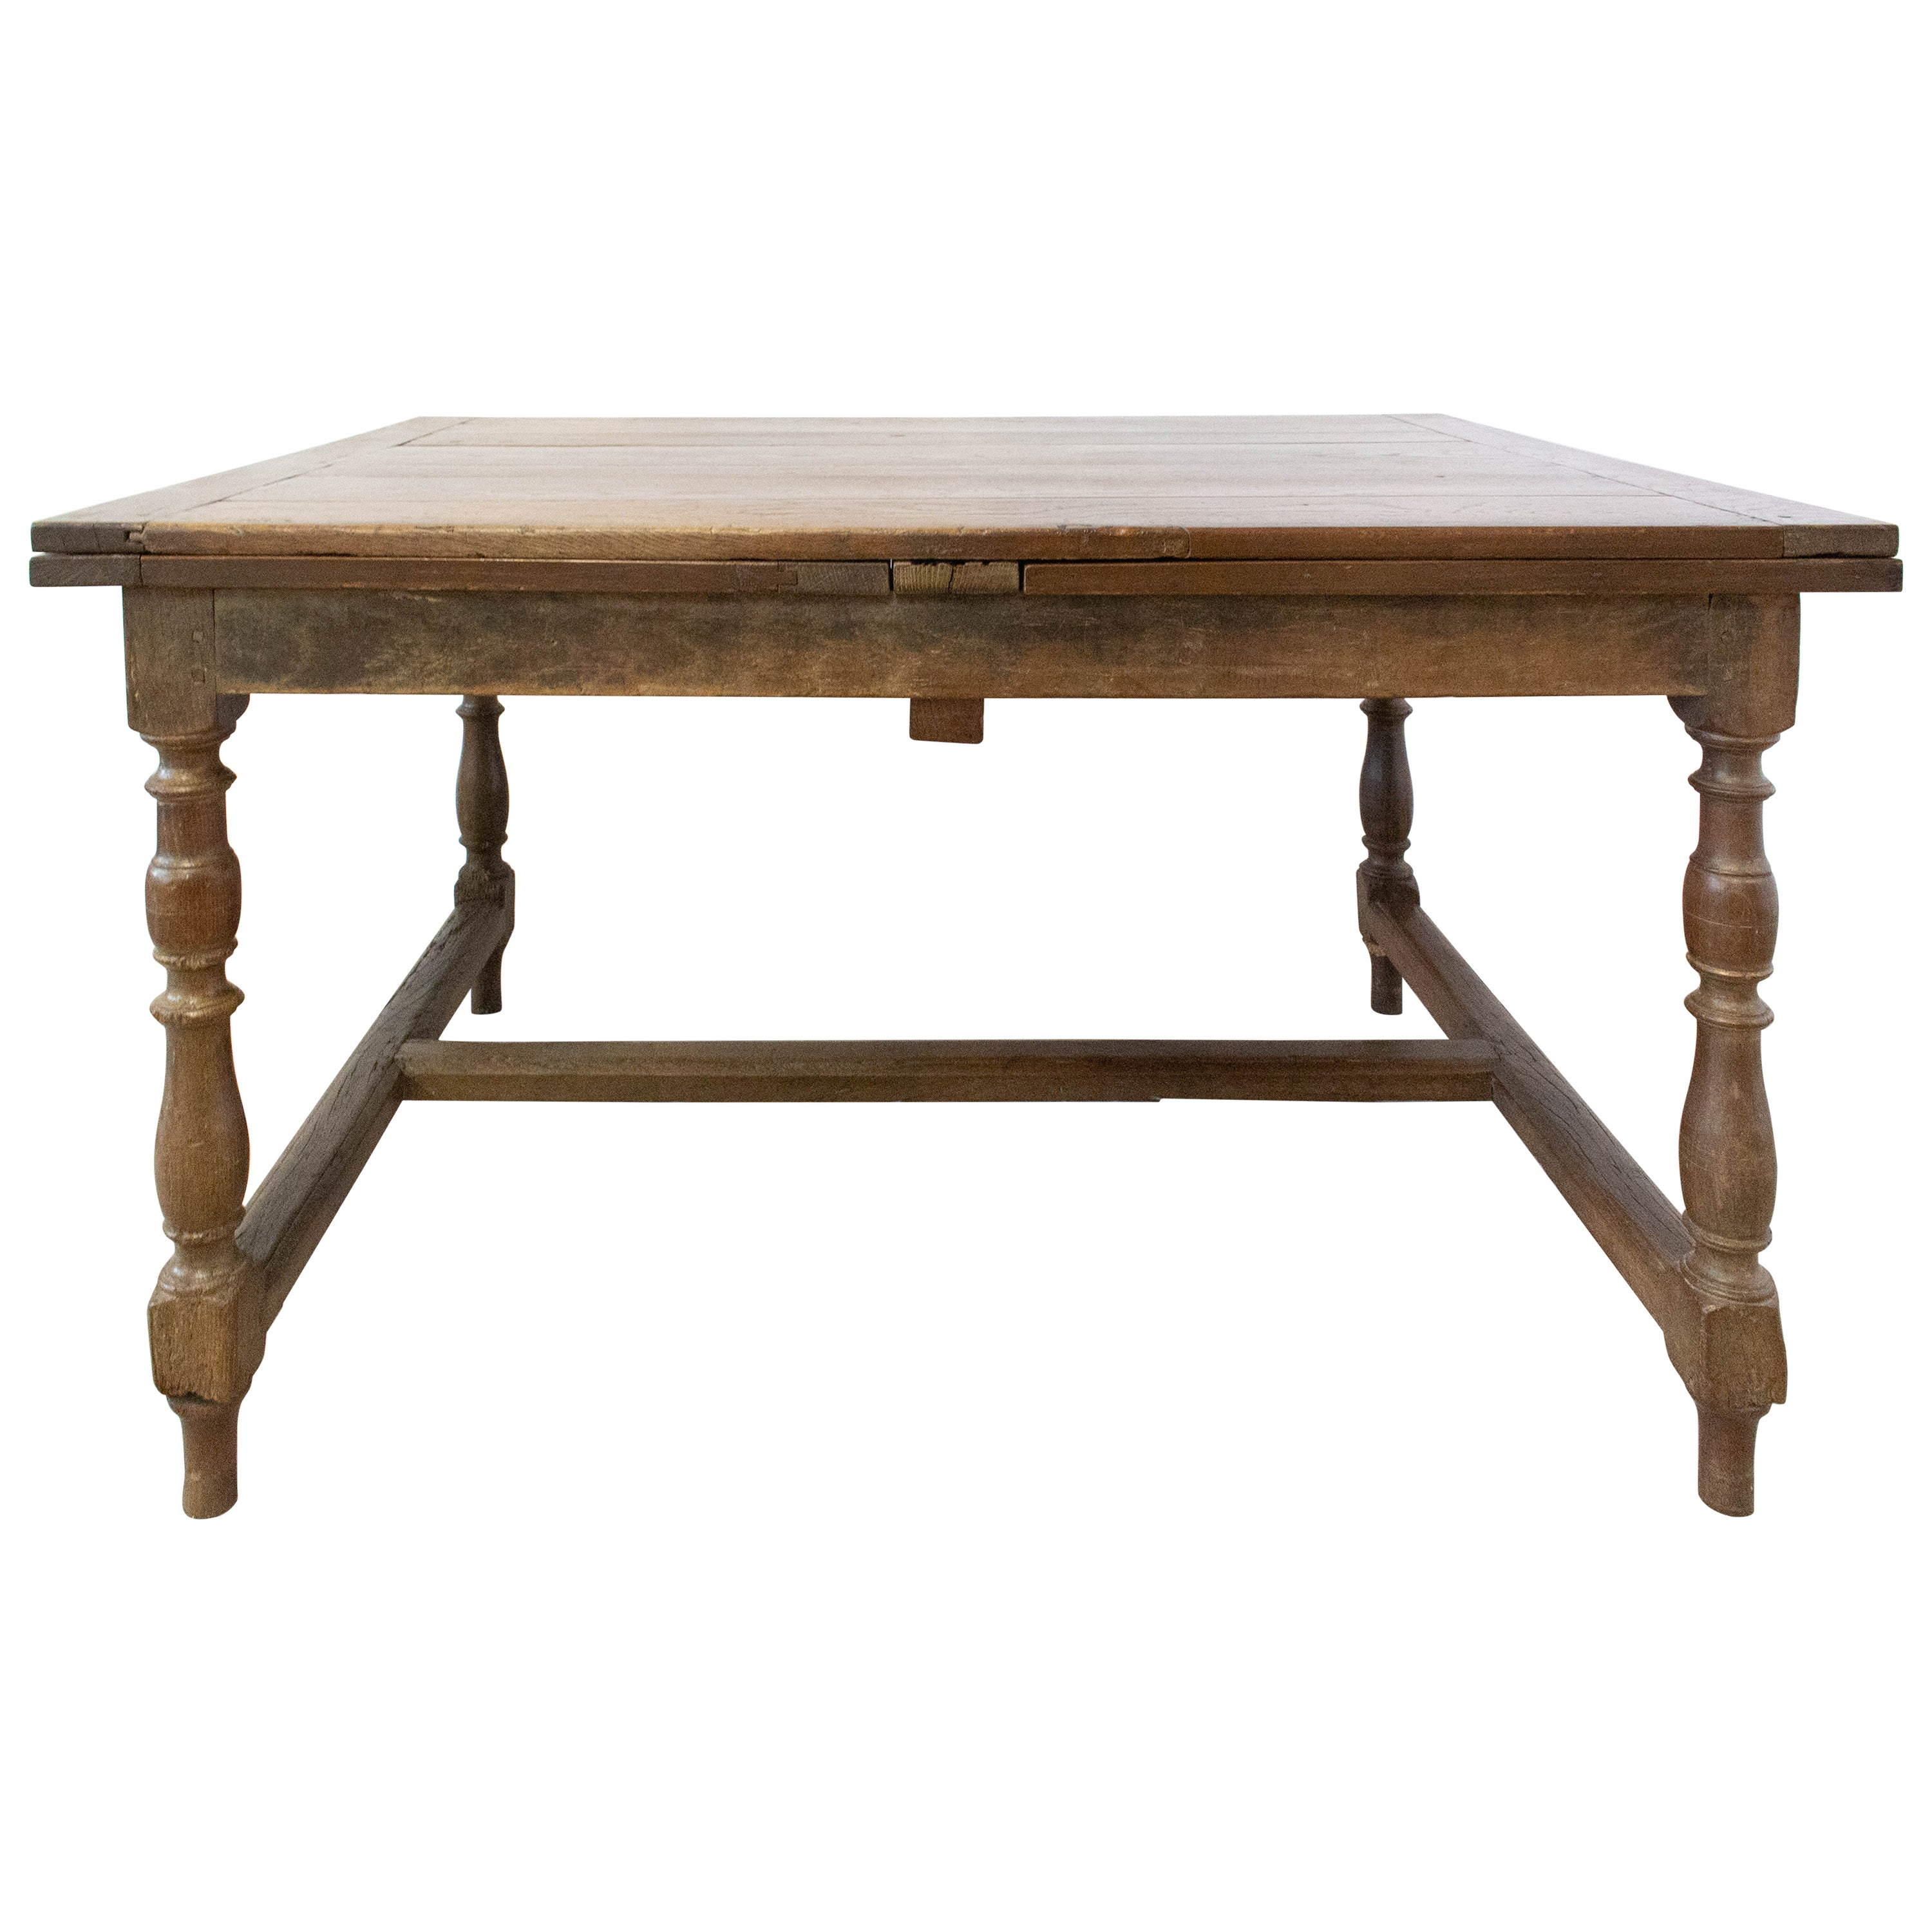 French Extending Dining Table Carved Oak, 19th Century